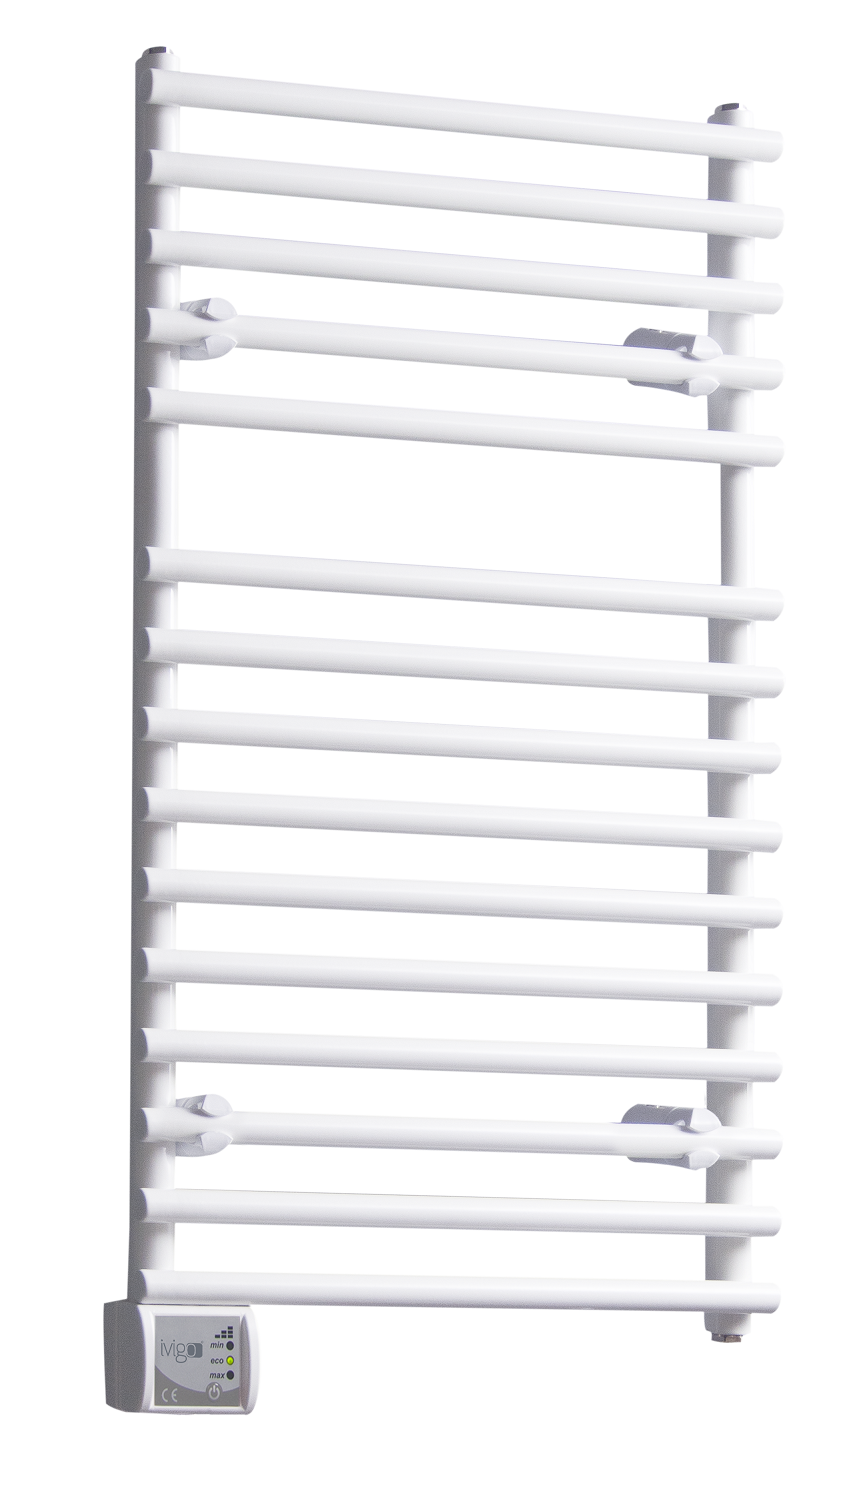 Radiator (calorifer) baie portprosop electric iVigo EHR 5019, 450 W, 500x1000 mm, culoare alb fornello imagine